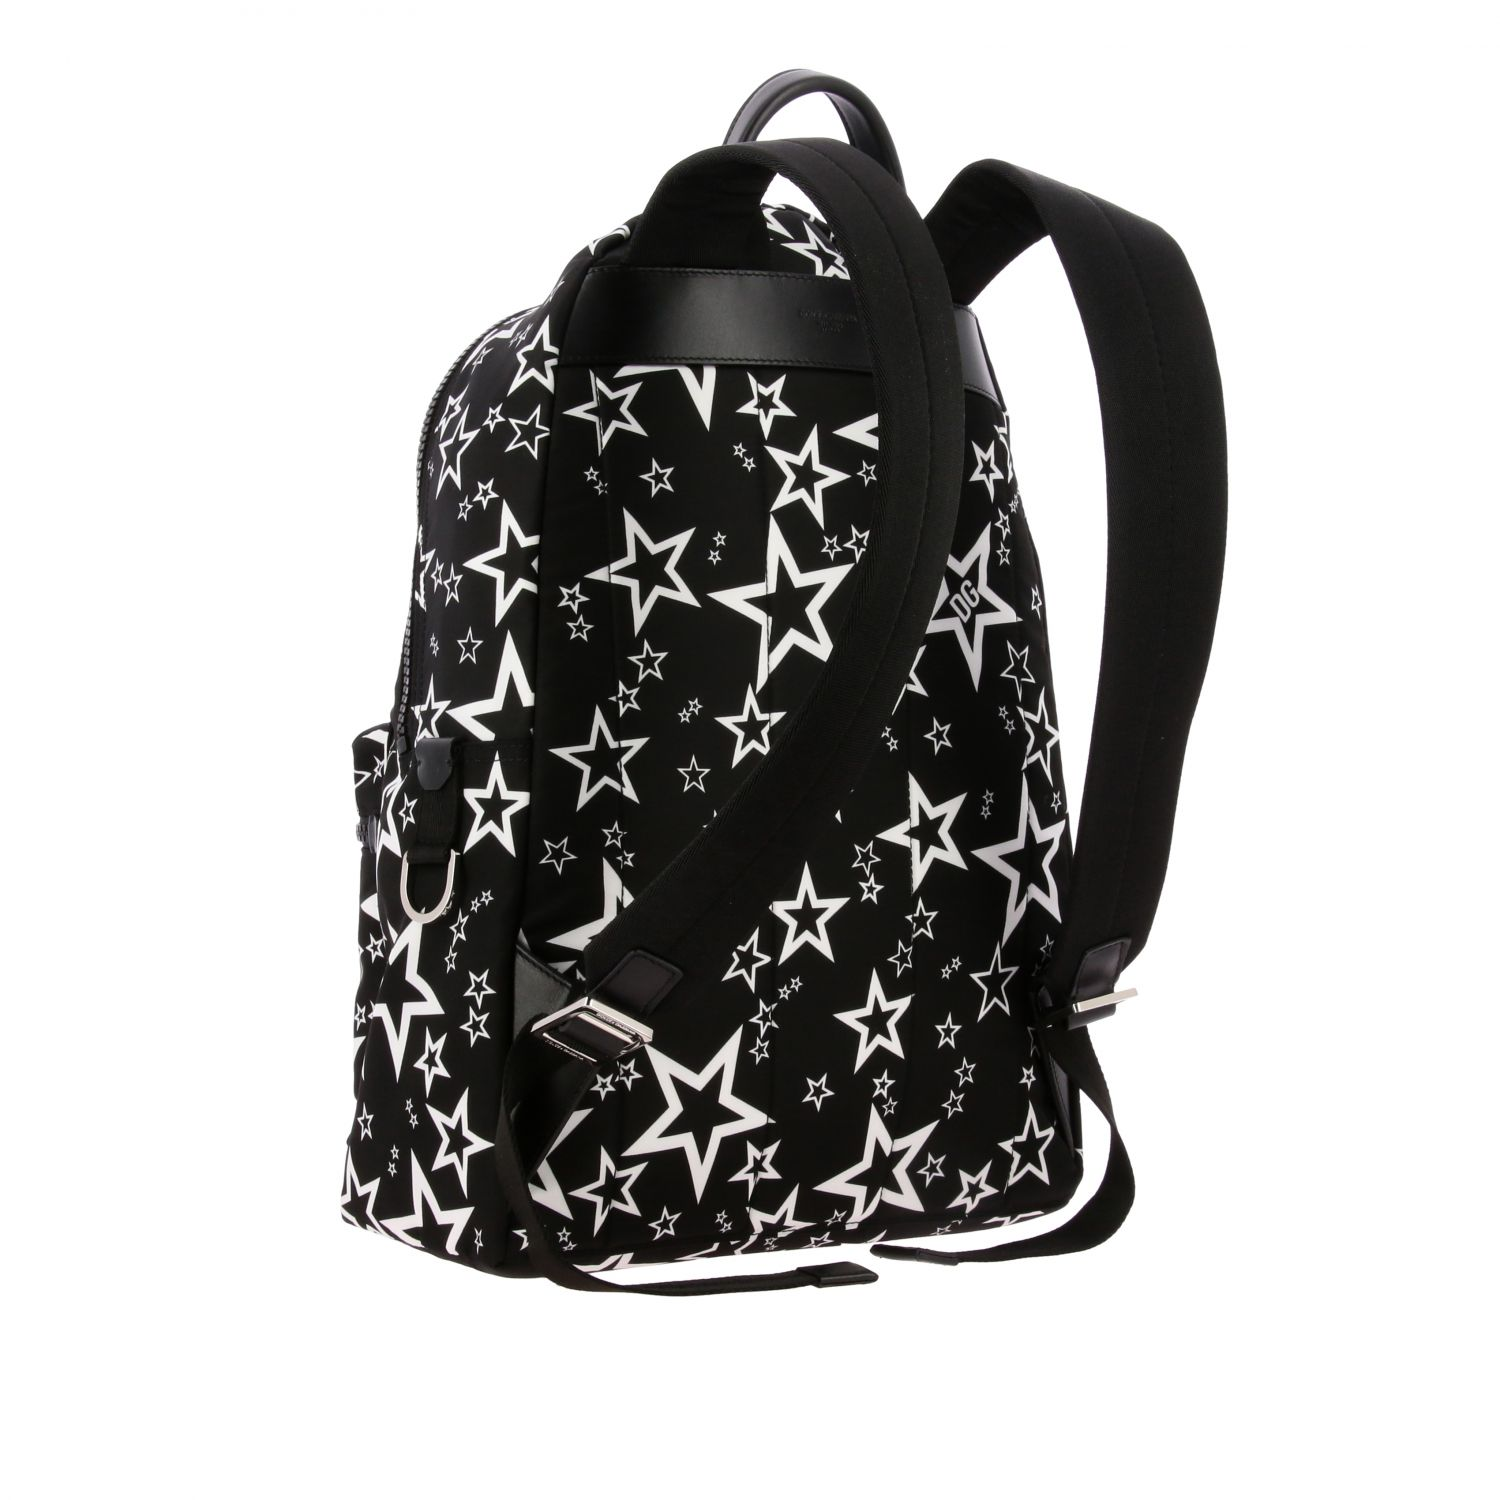 Backpack Dolce & Gabbana: Dolce & Gabbana canvas backpack with all over star print black 3